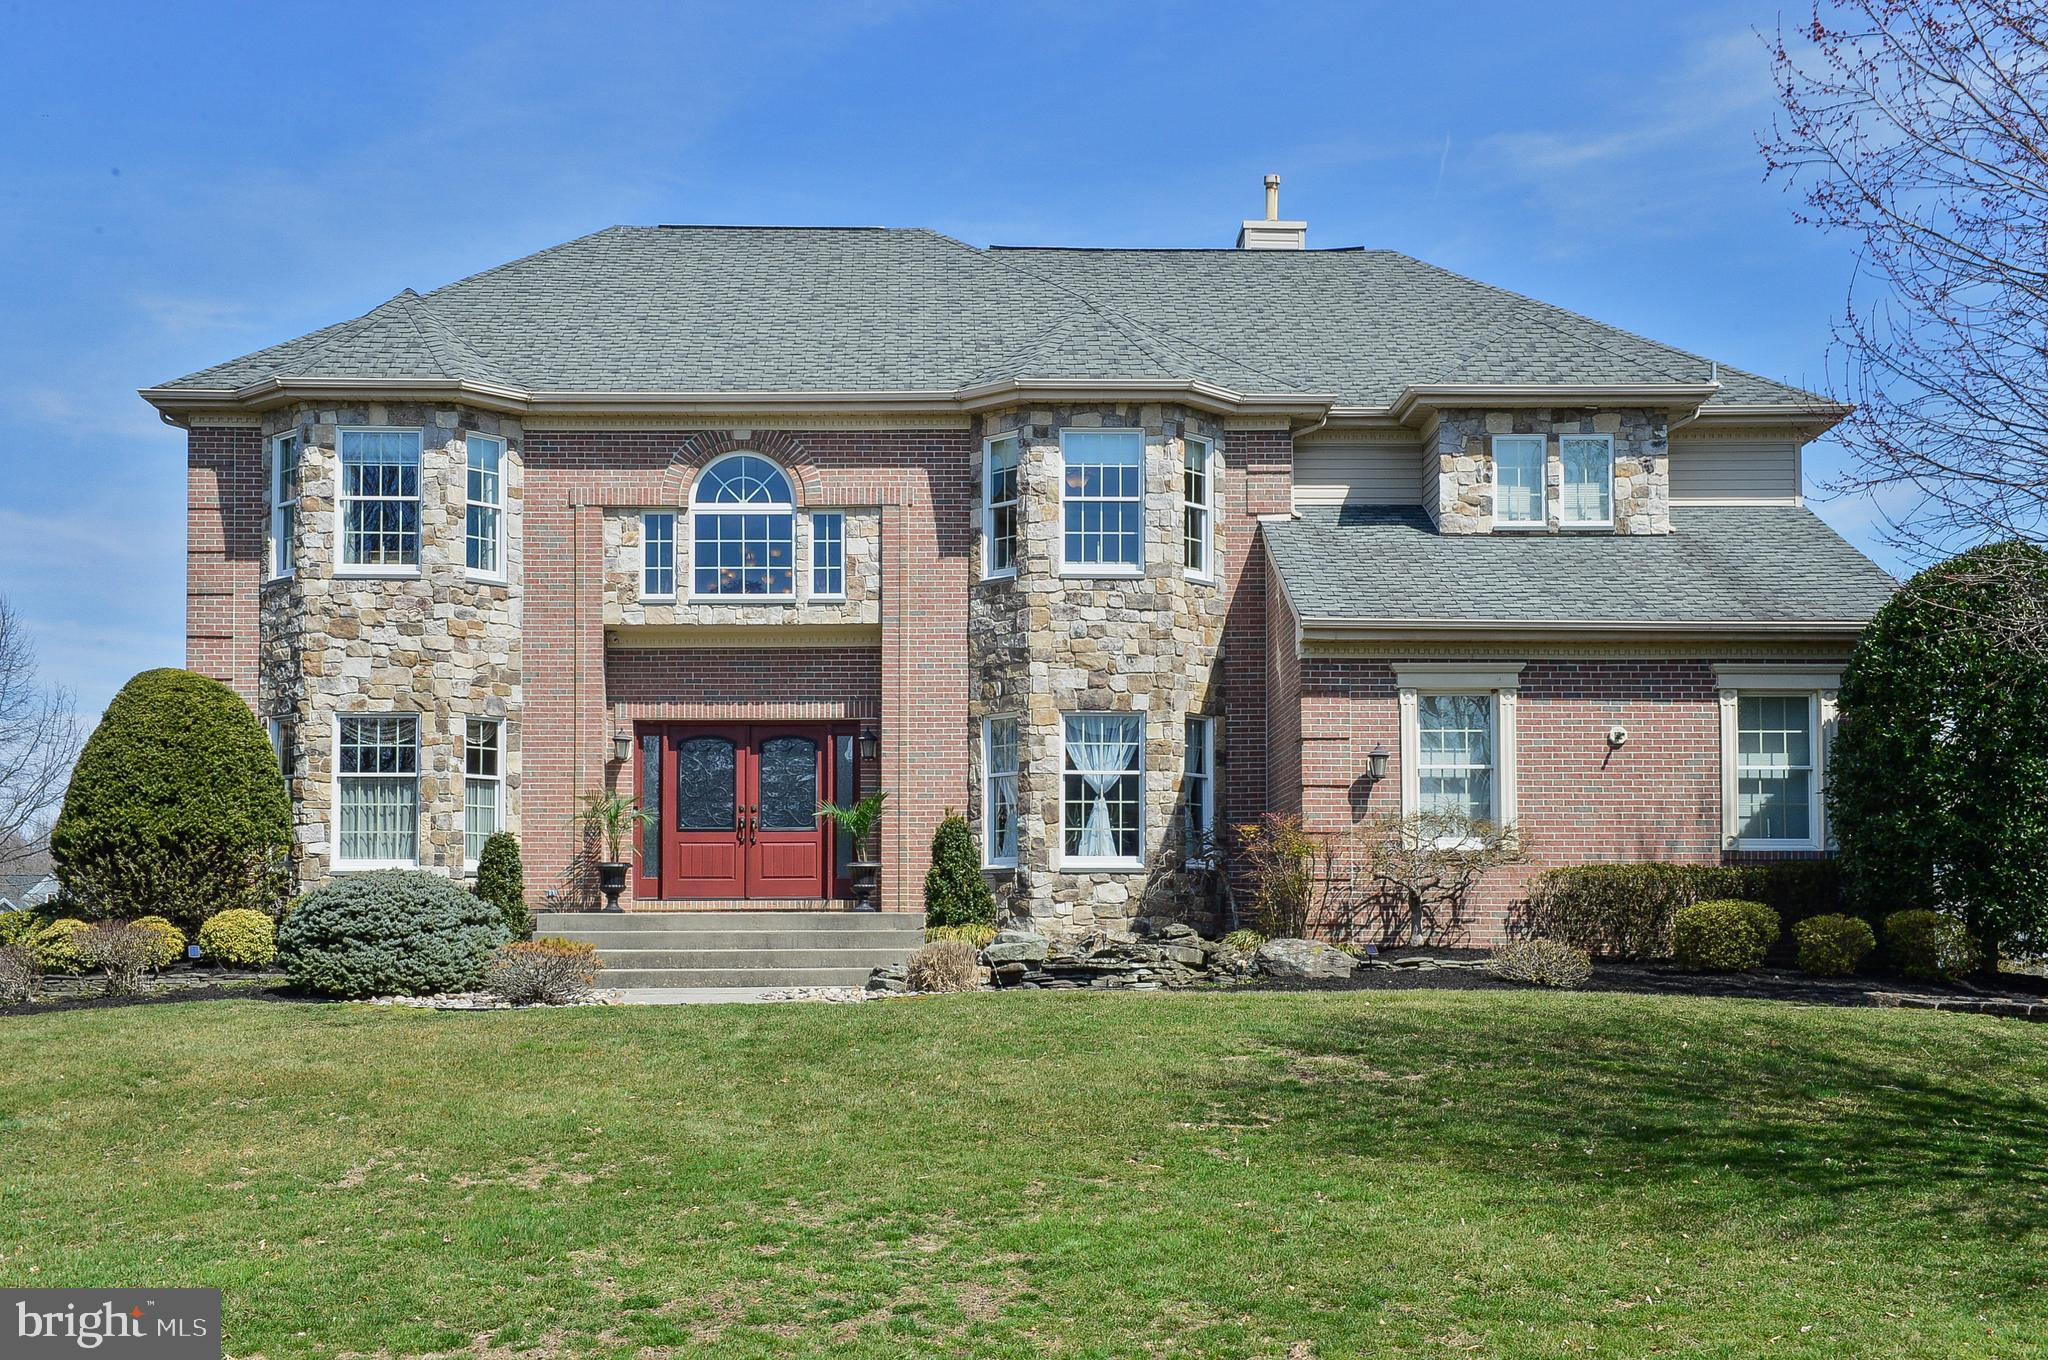 9 YEARLING CHASE, MOUNT LAUREL, NJ 08054